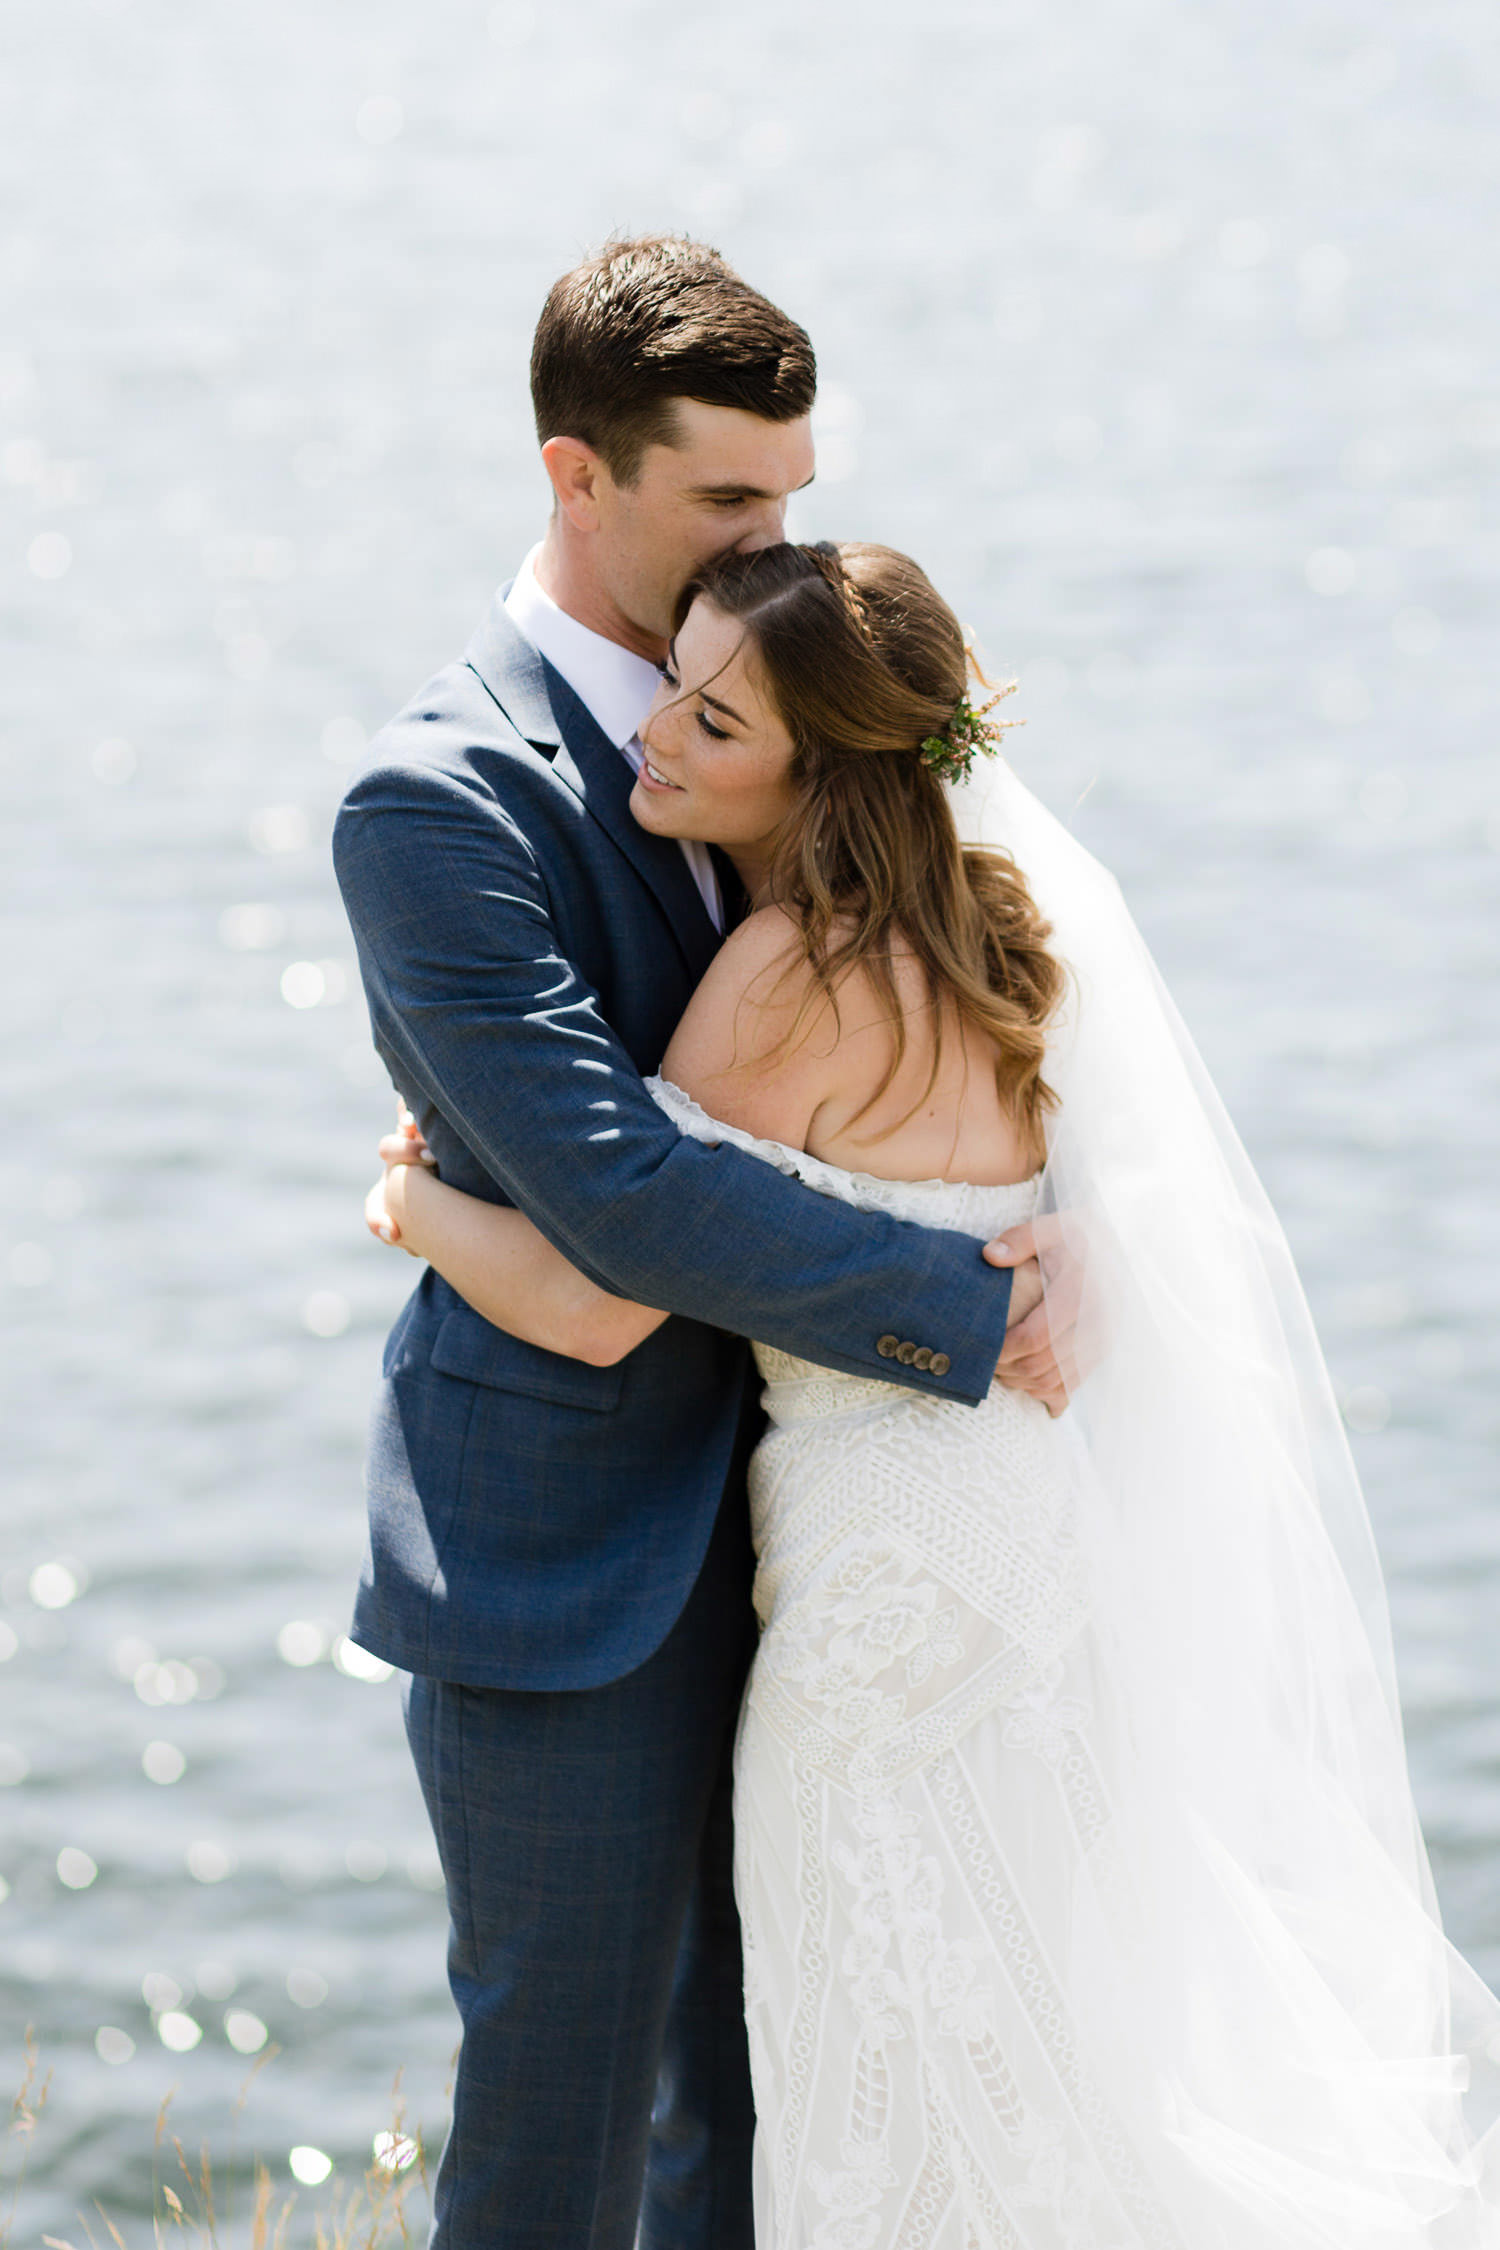 Don't let me go - Sweet couple first look, rustic boho wedding | Photo: Camilla Anchisi